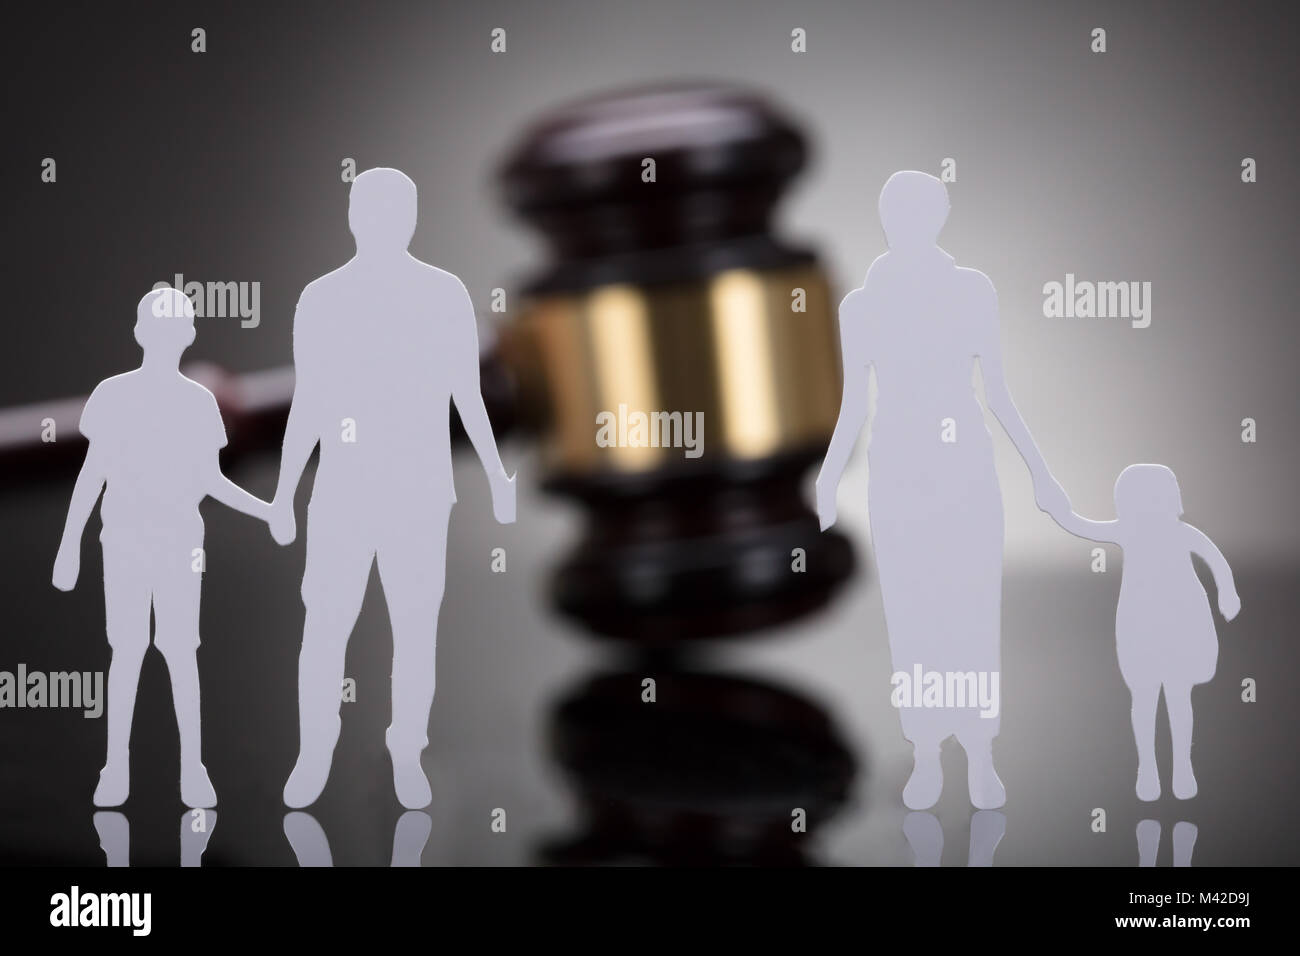 Separation Of Family Figure Cut Out In Front Of Gavel On Grey Background - Stock Image